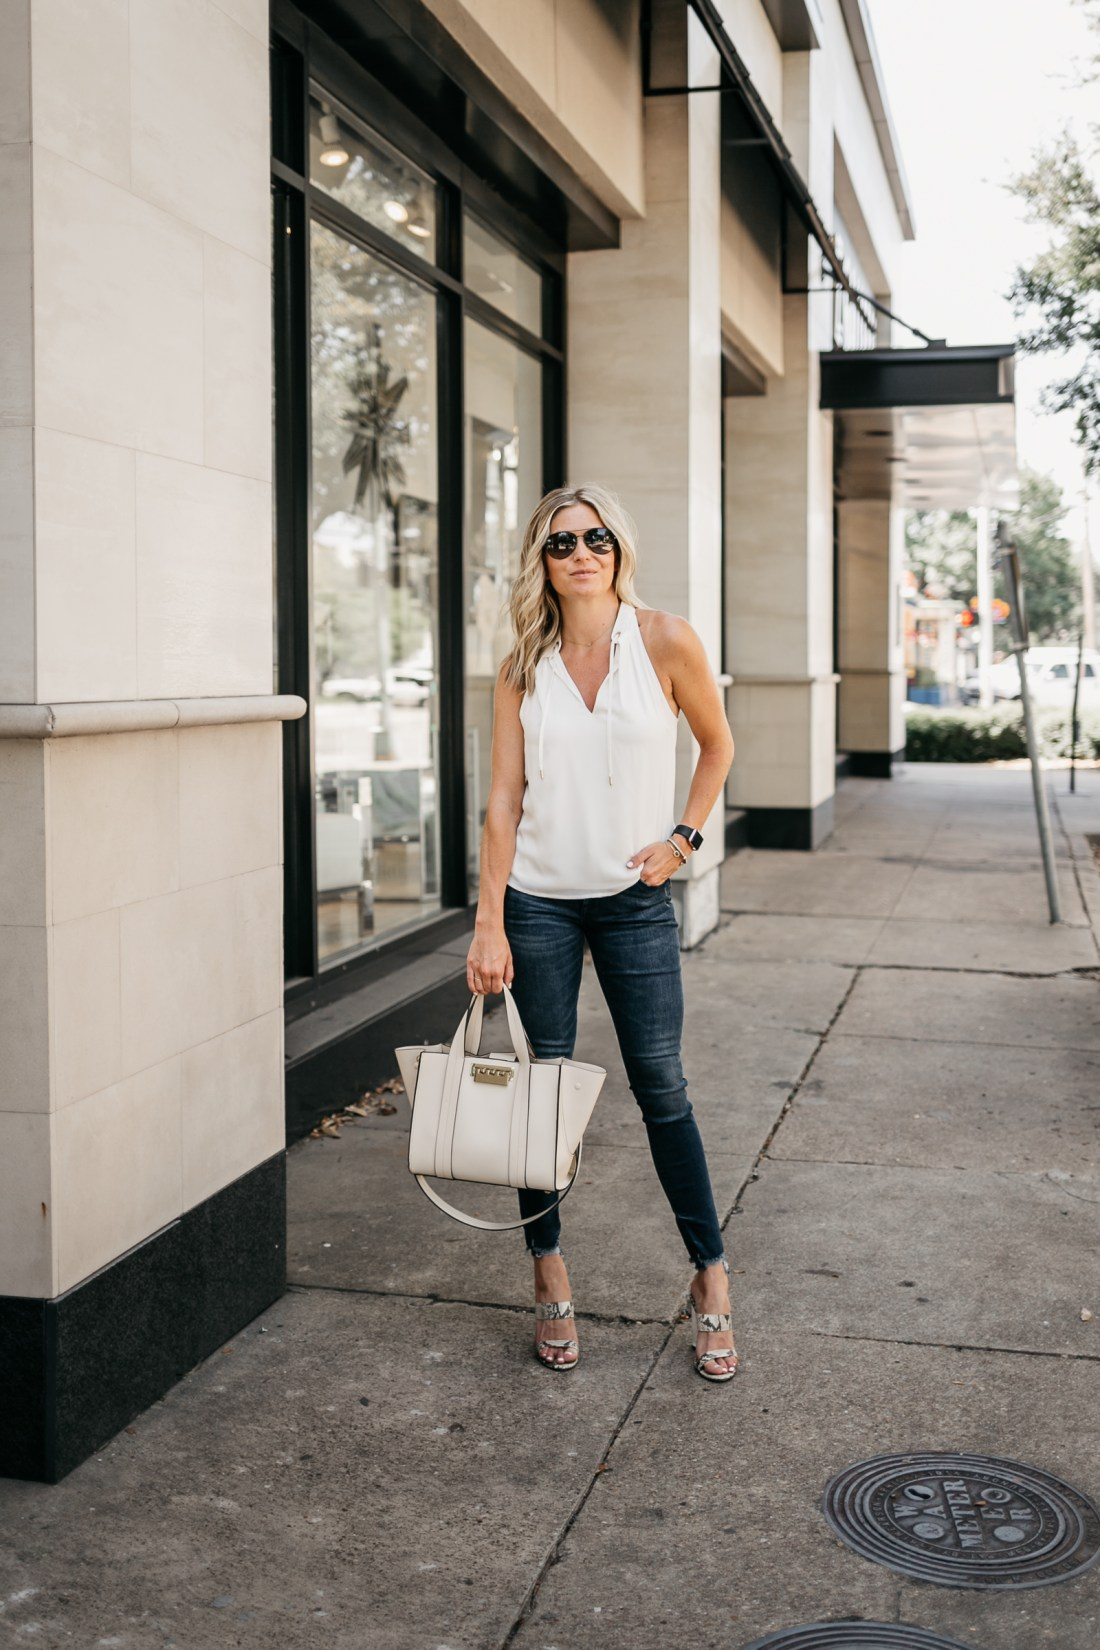 an ambitious mindset in a business casual outfit, what drives ambition